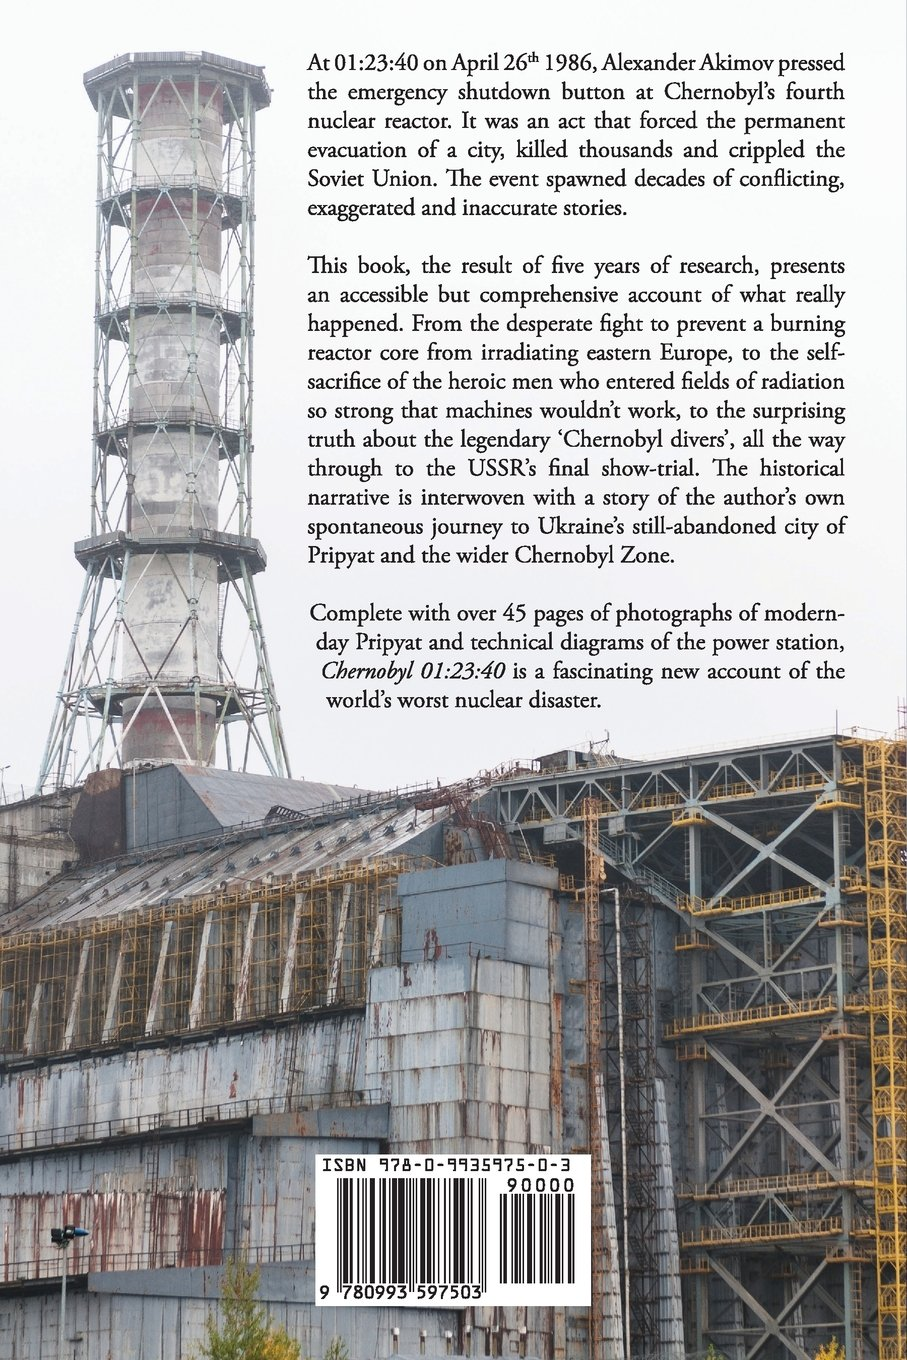 Chernobyl 012340 the incredible true story of the worlds worst chernobyl 012340 the incredible true story of the worlds worst nuclear disaster andrew leatherbarrow 9780993597503 amazon books freerunsca Images